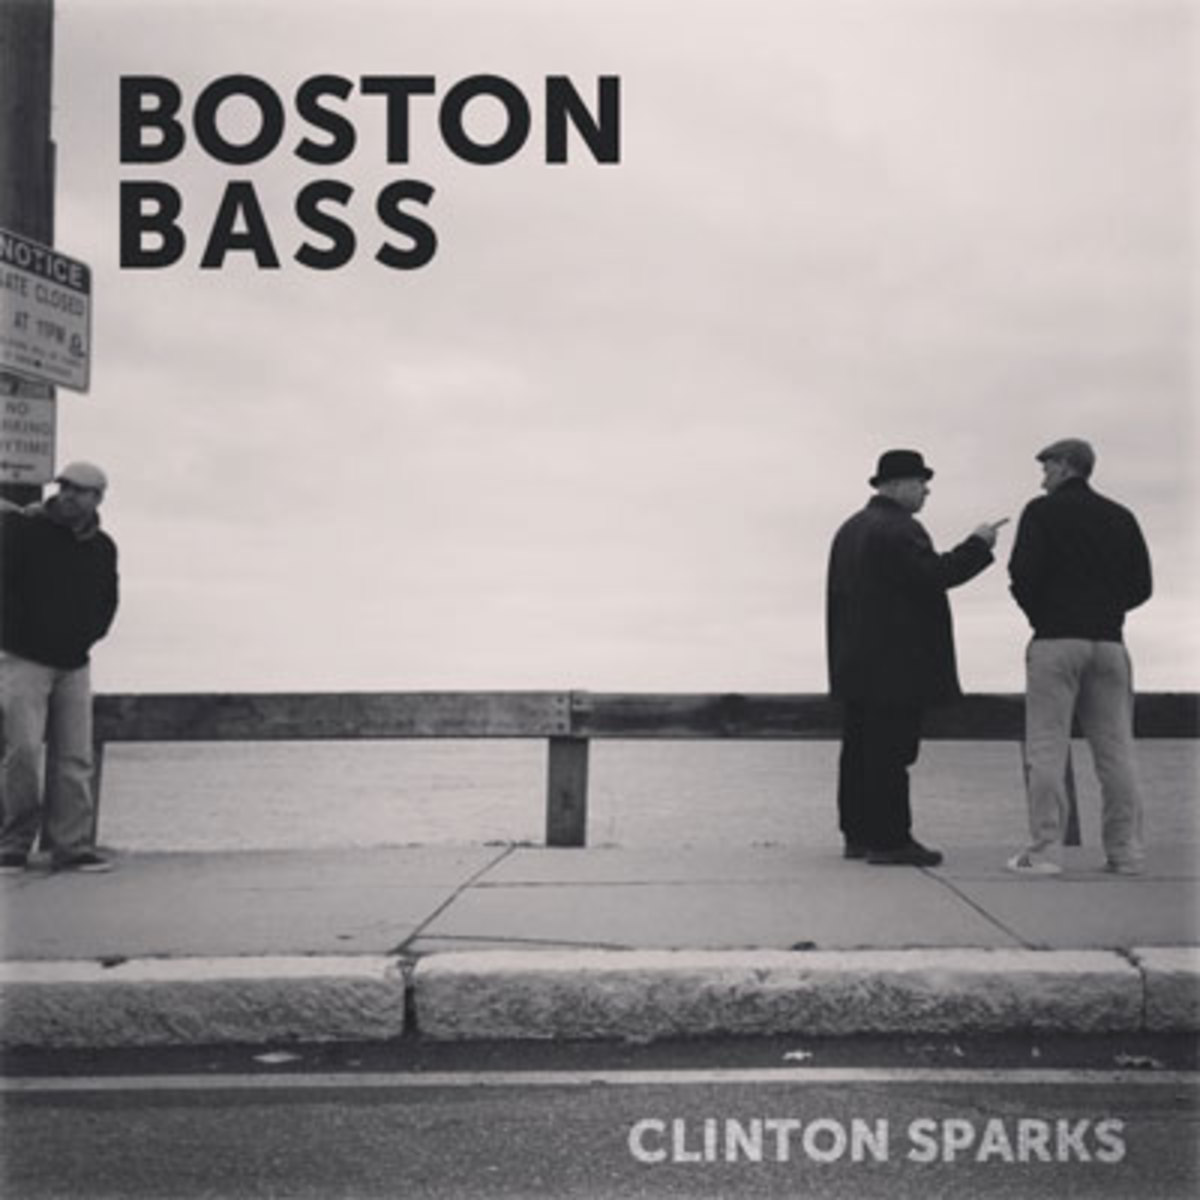 clintonsparks-bostonbass.jpg